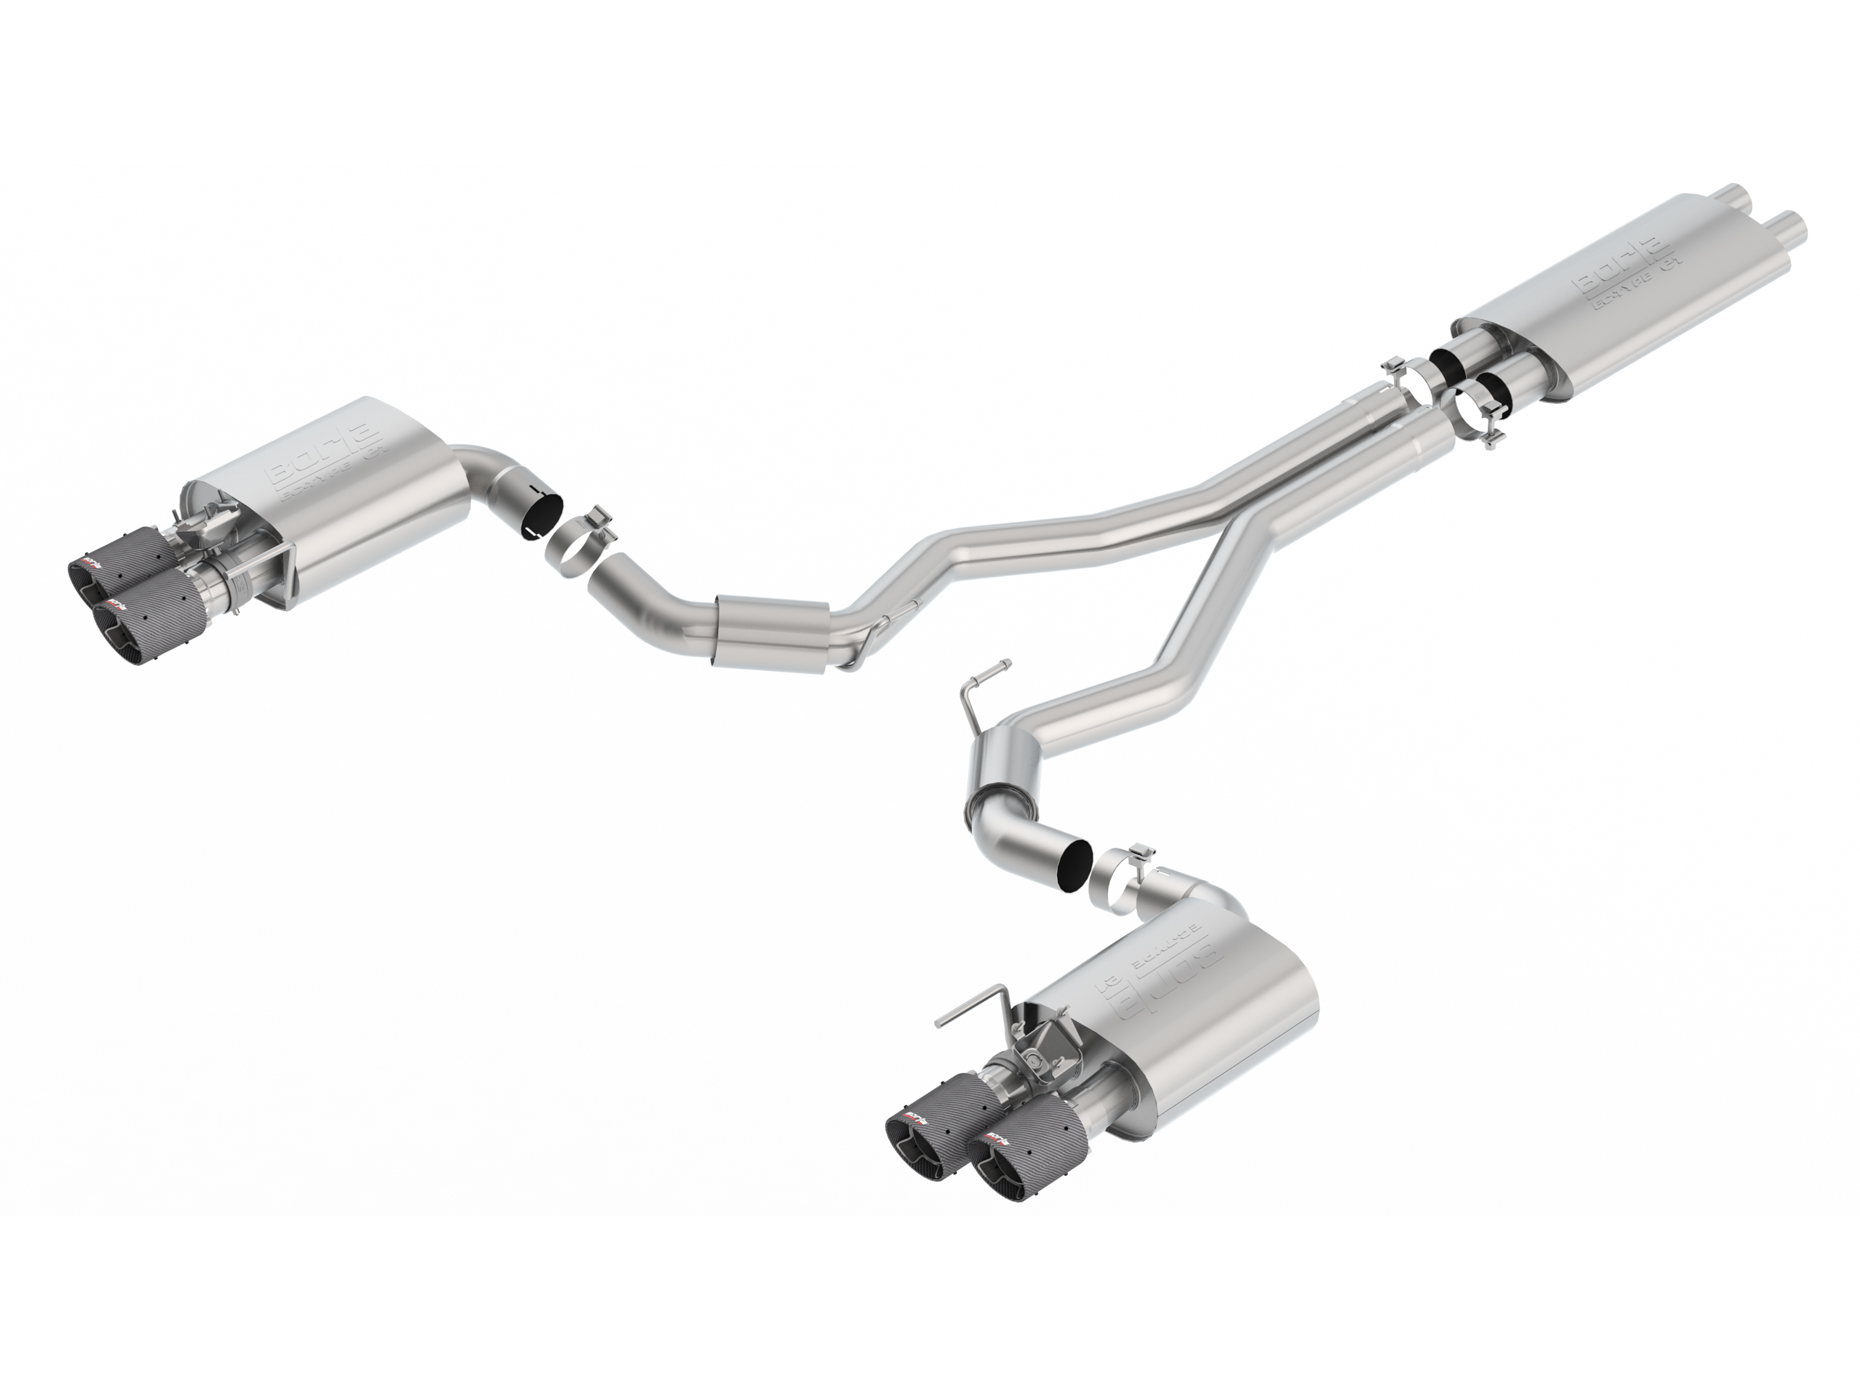 2018-2020 Ford Mustang GT Borla ECE Approved Cat-Back Exhaust System w/Active Valves